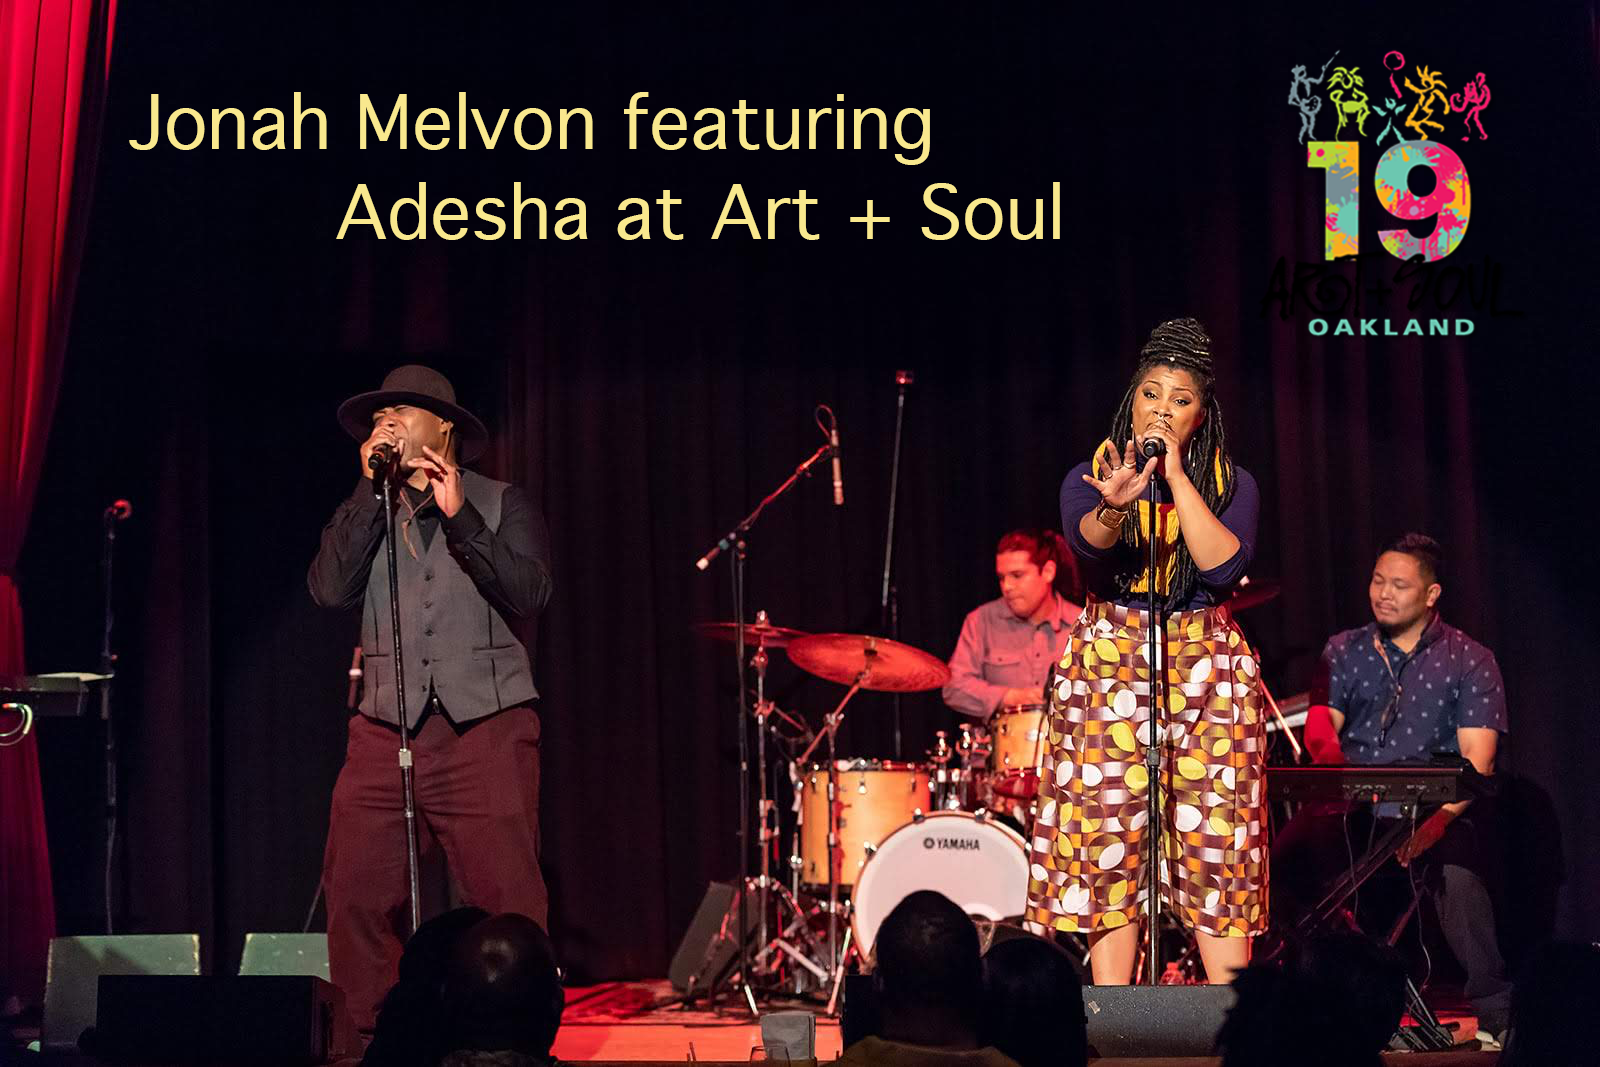 http://www.riovida.net/wp-content/uploads/2019/07/Join Jonah Melvon featuring Adesha on Saturday July 27,2019 Oakland Art + Soul